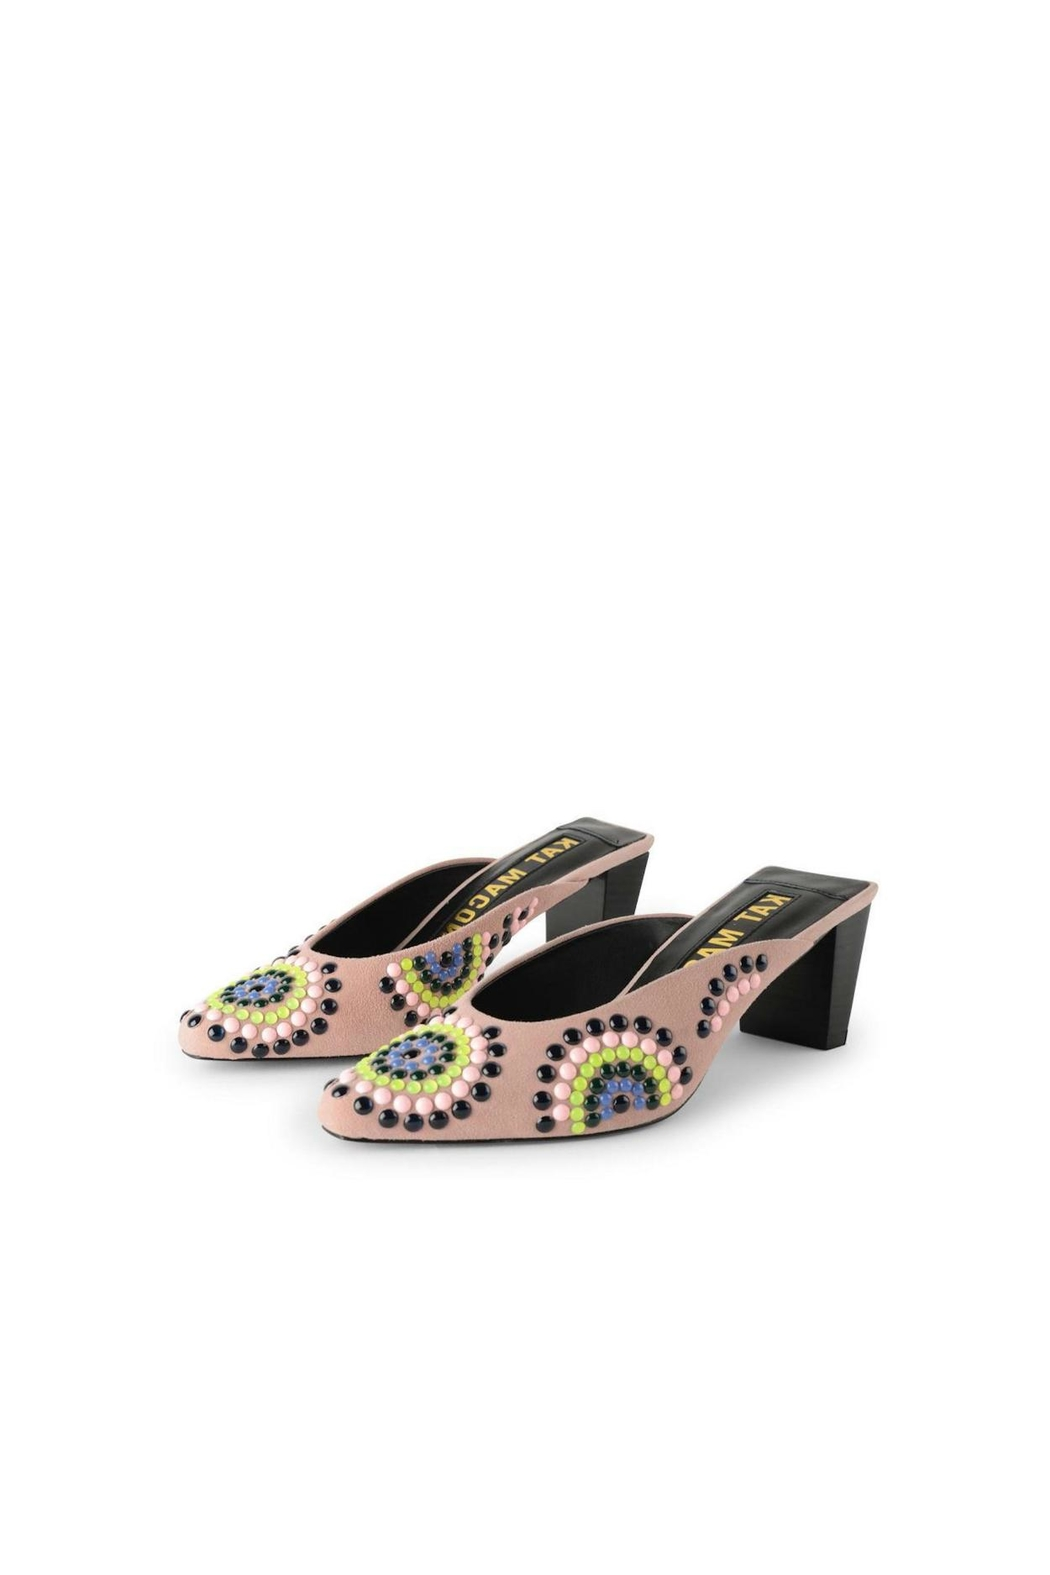 dc6d3b54c Kat Maconie Luella Kitten Heel from Los Angeles by Tags Boutique ...